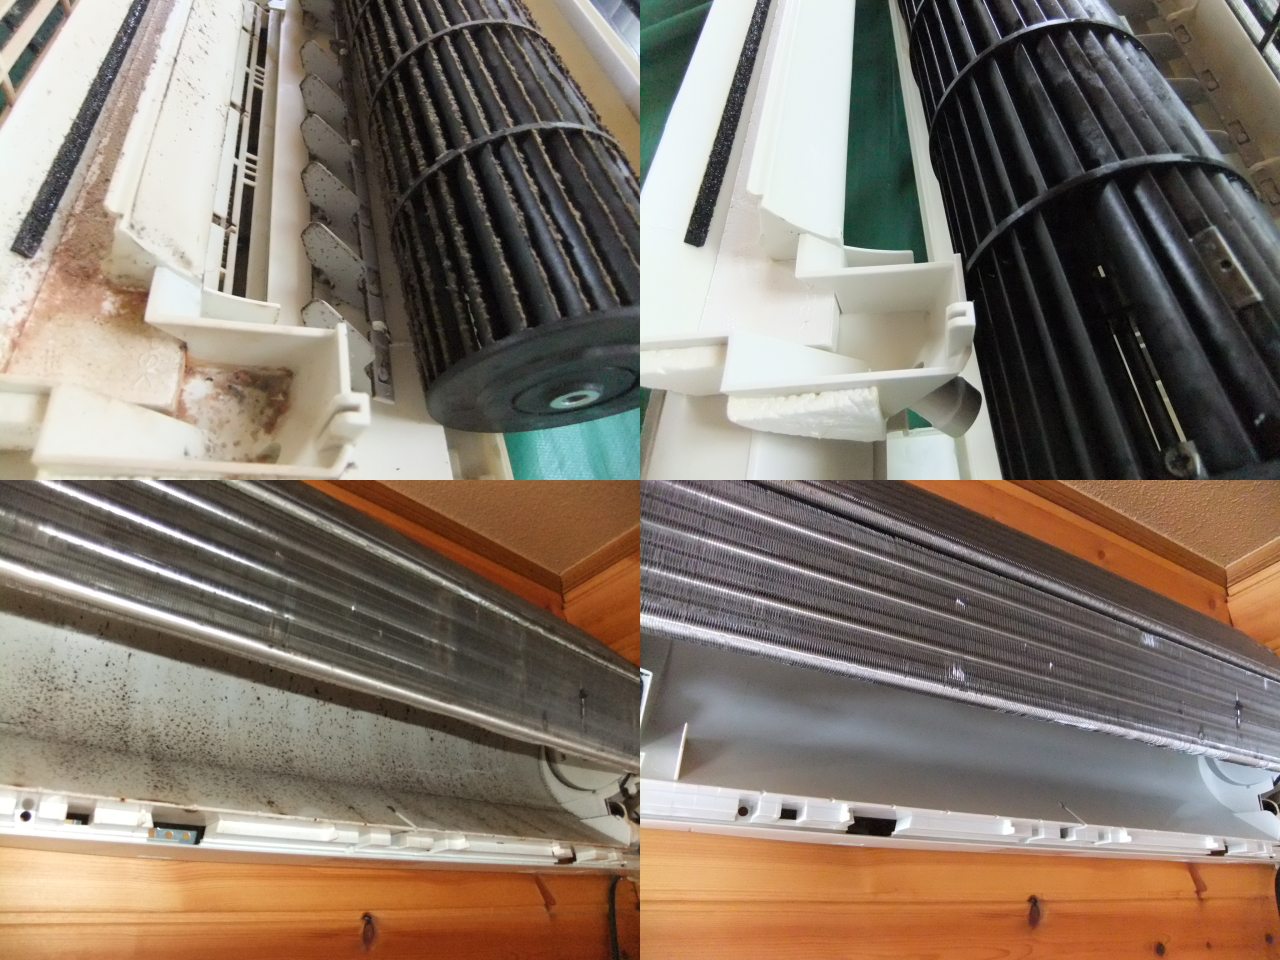 http://ajras.net/images/110623-aircon2.jpg